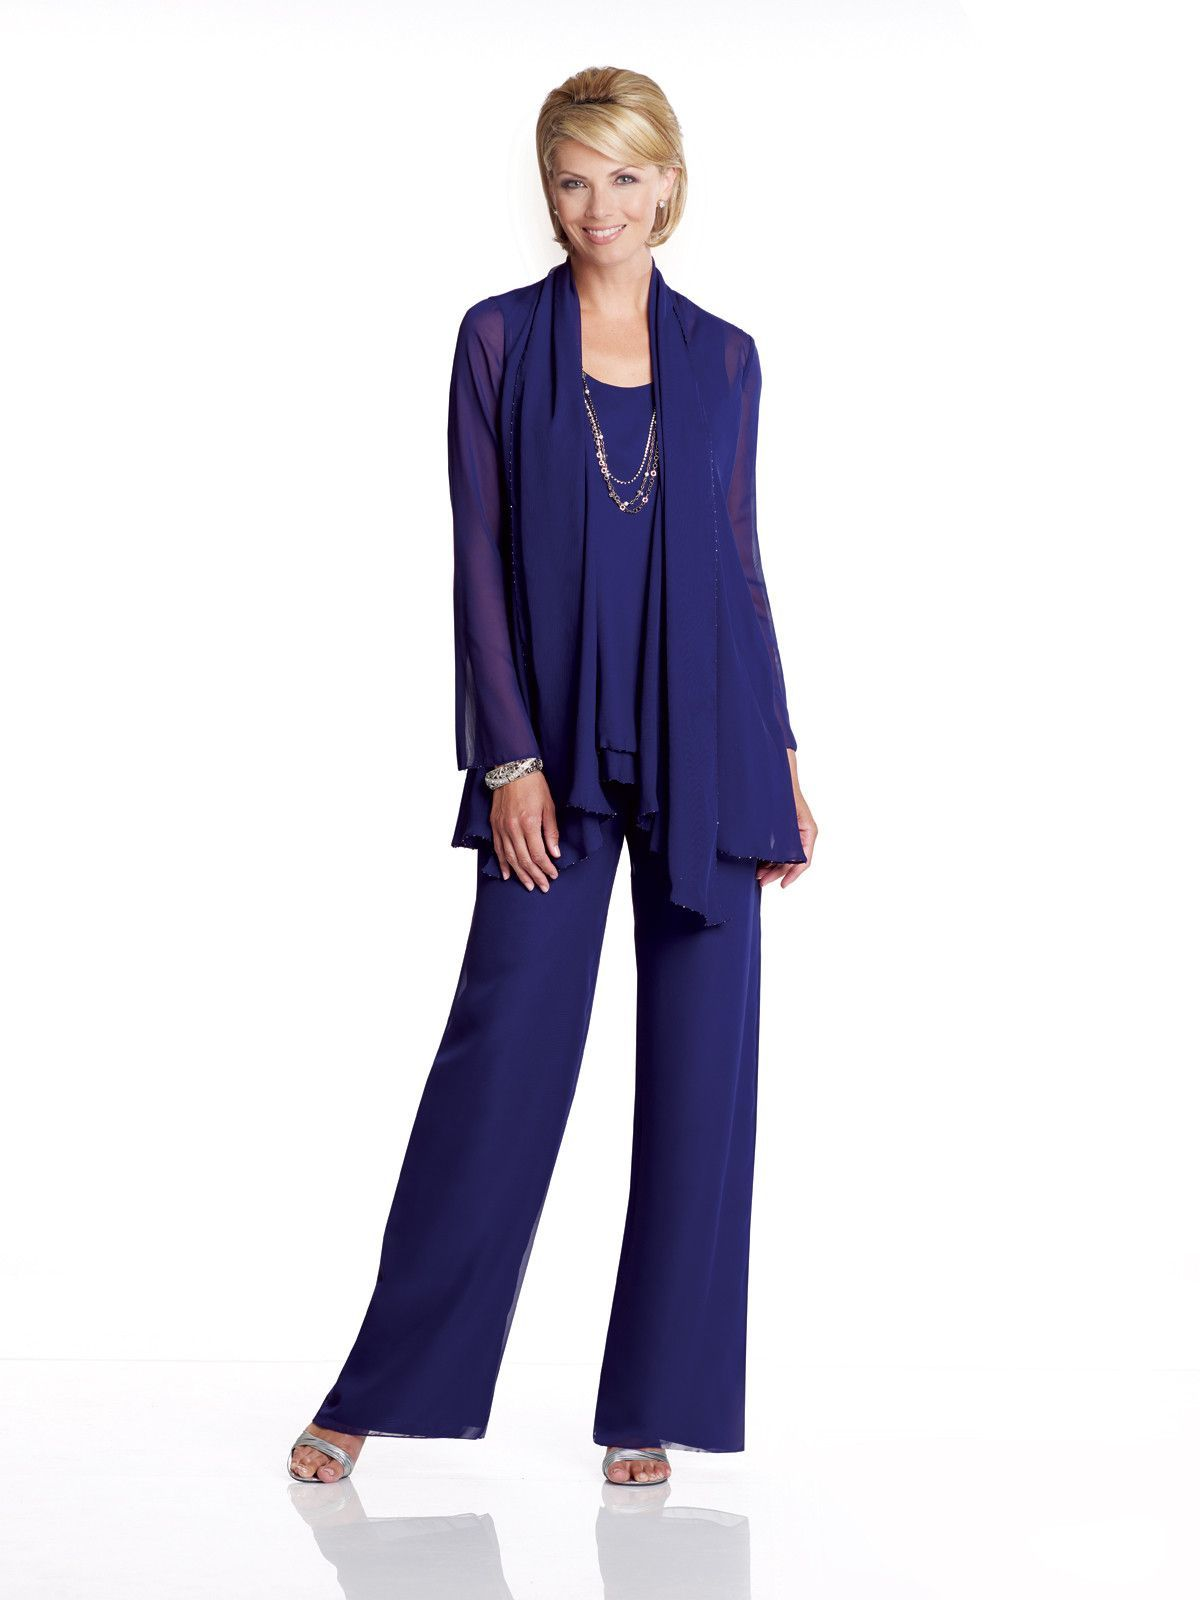 Three-piece chiffon pant suit, sleeveless tank bodice features ...